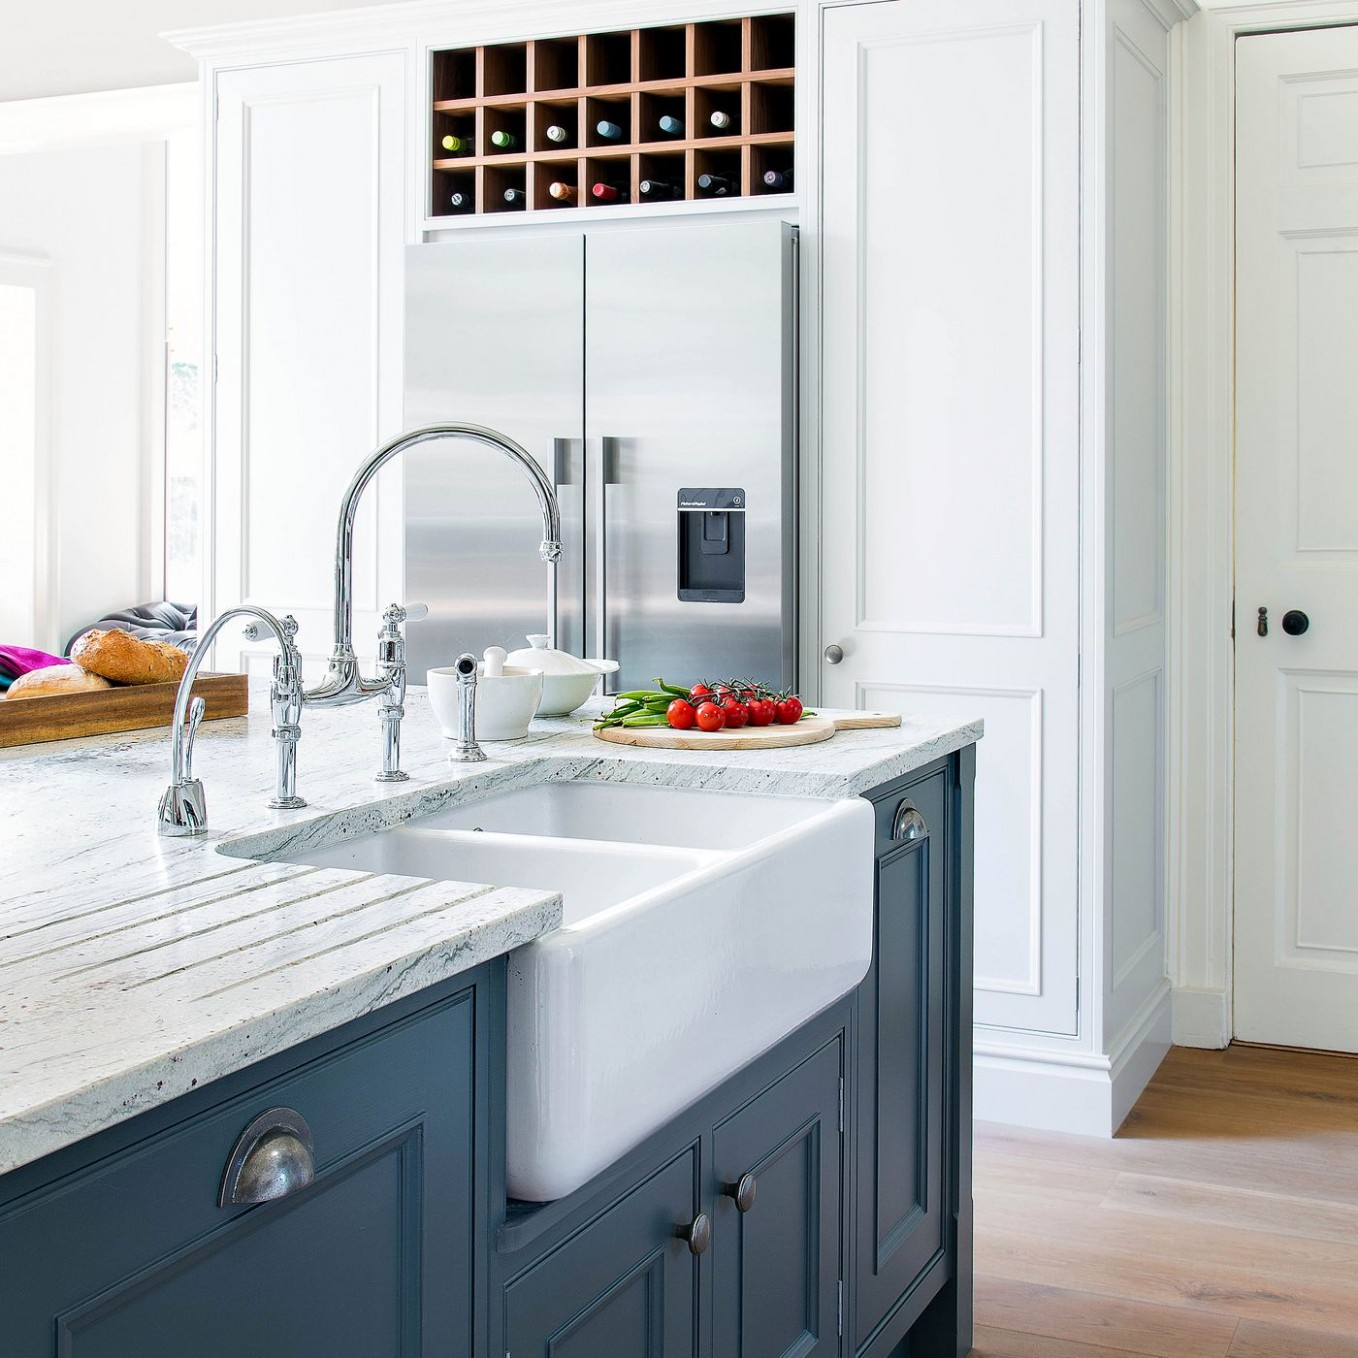 How to Paint Kitchen Cabinets in 11 Steps - This Old House - How To Finish The Bottom Of Upper Kitchen Cabinets